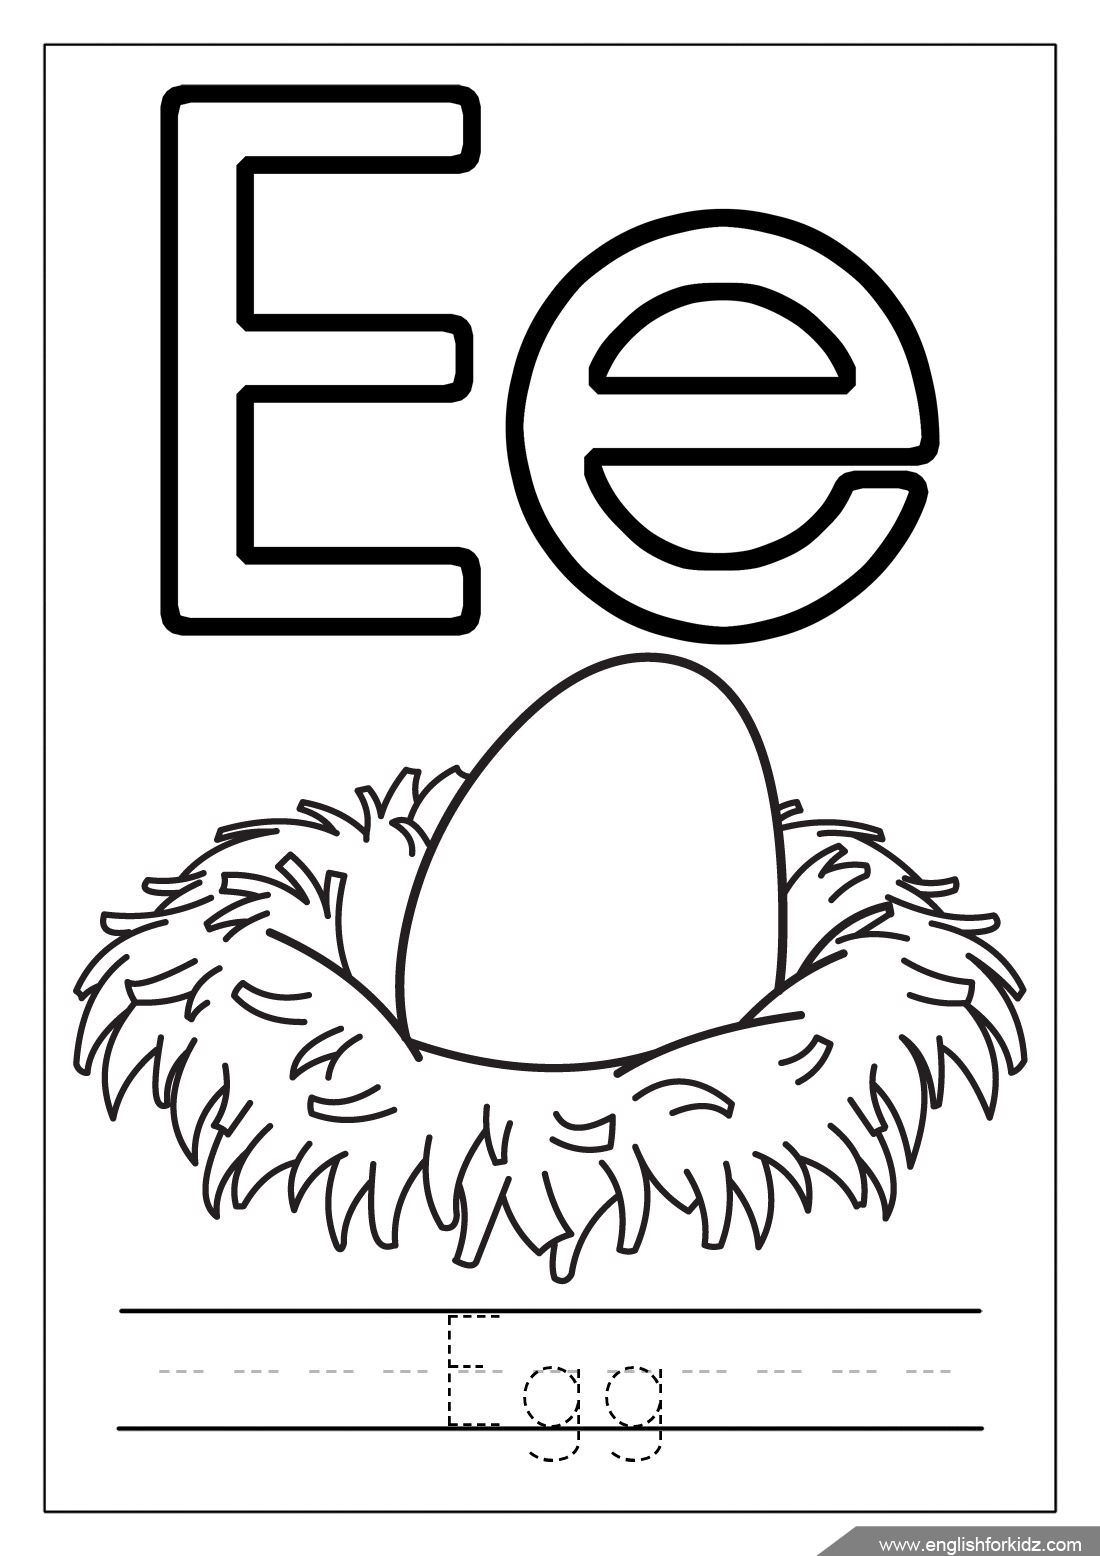 Letter E Worksheets, Flash Cards, Coloring Pages for Letter E Worksheets Coloring